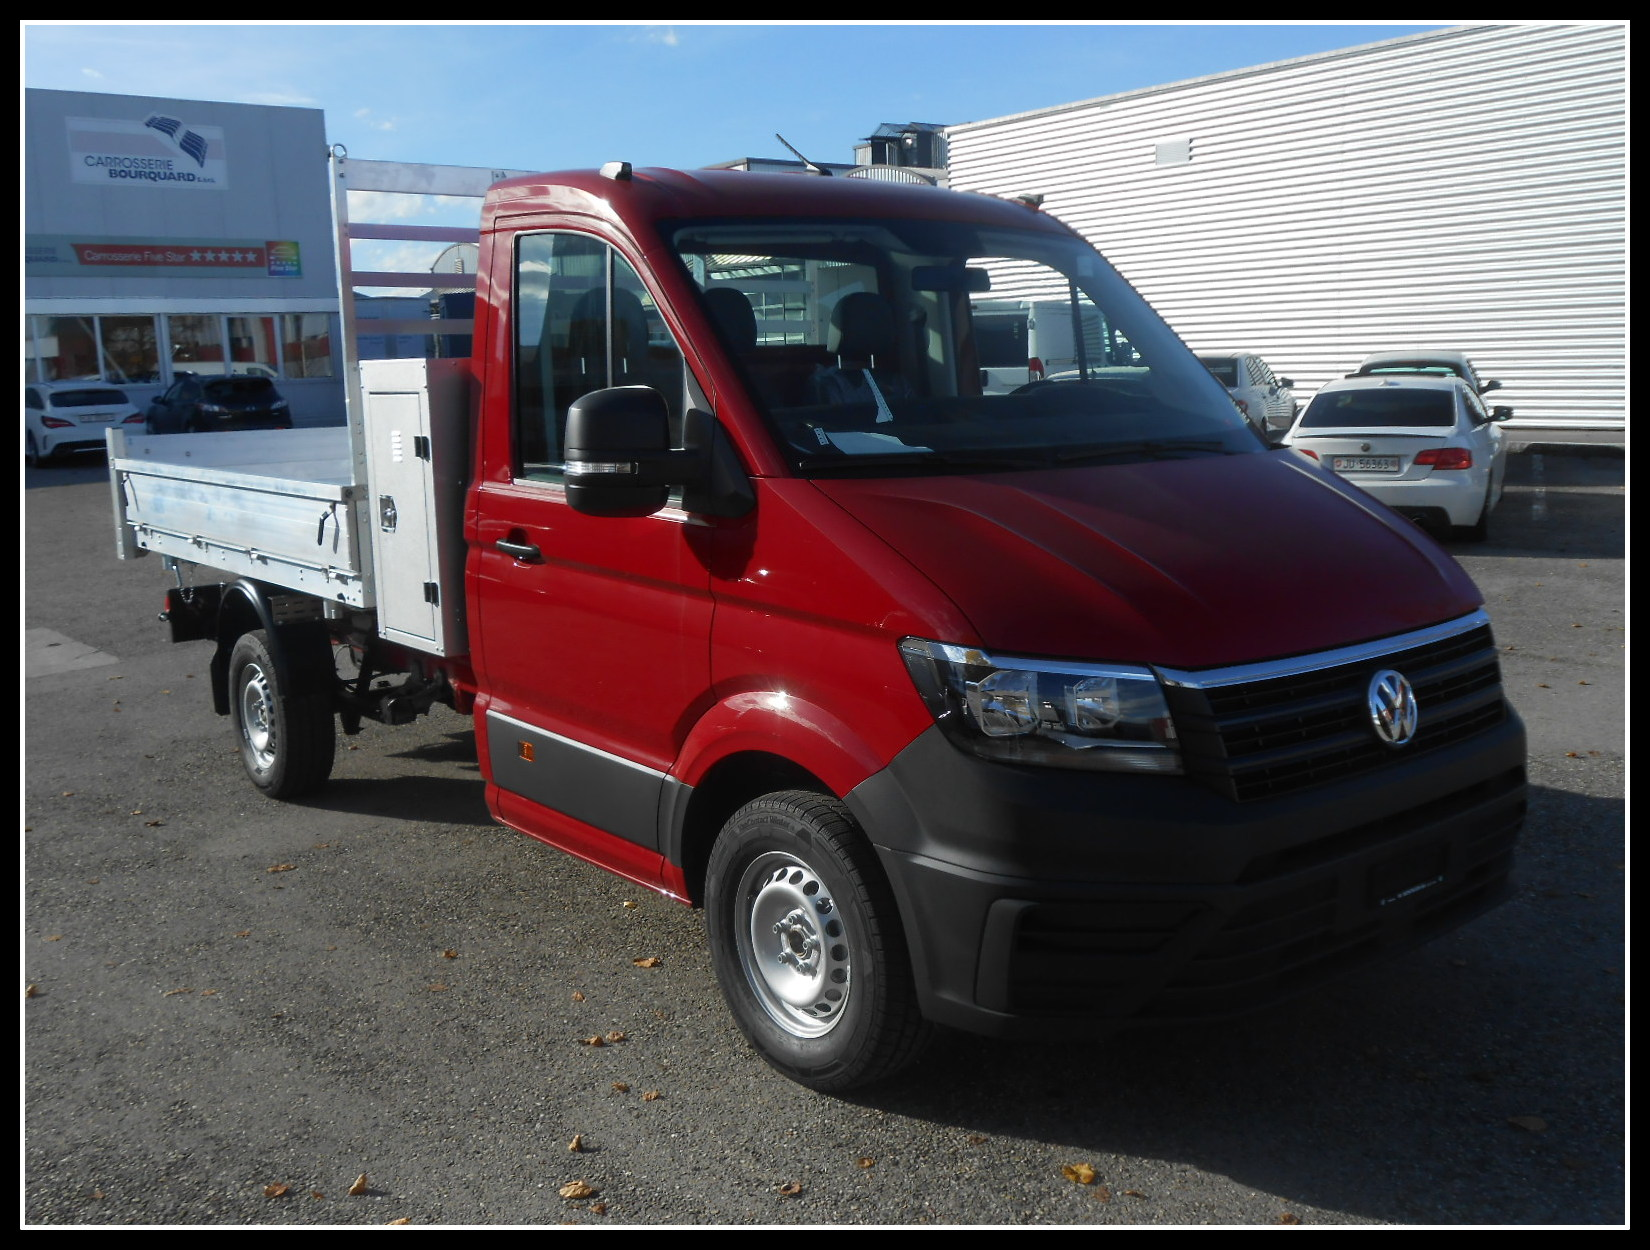 VW Crafter Habertuher Automobiles SA Offre RB PB 0021 2018  (4) b